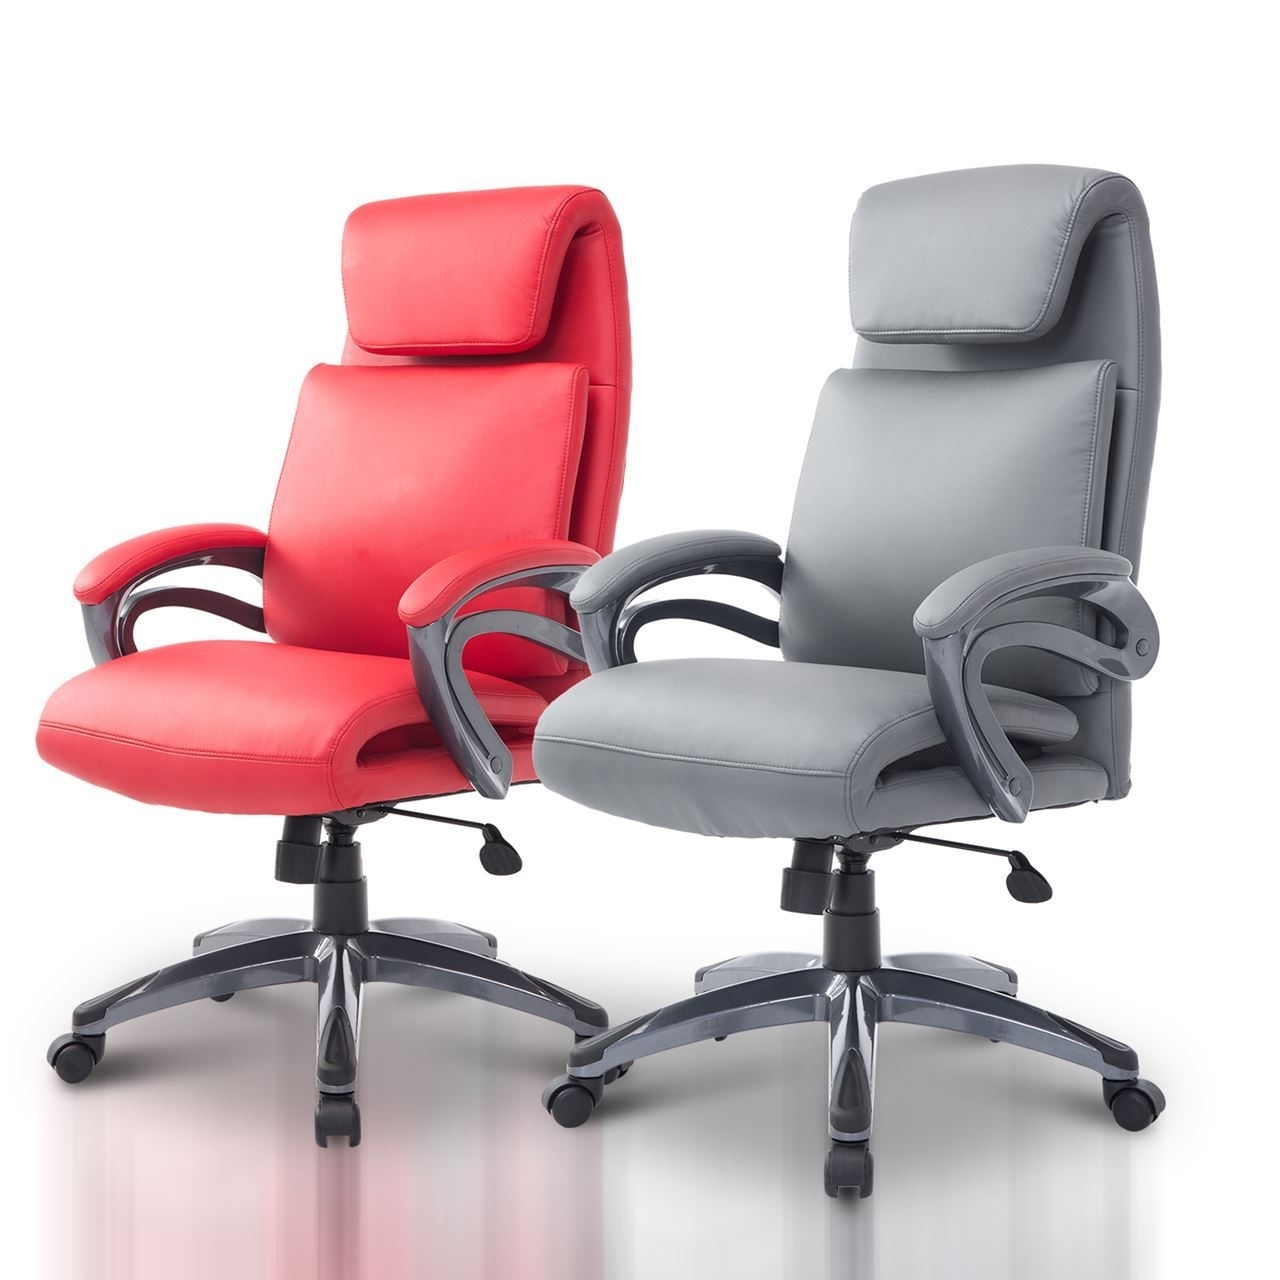 Executive Office Armchairs For Preferred Chair : Rolling Office Chair Best Ergonomic Chair Luxury Executive (View 8 of 20)